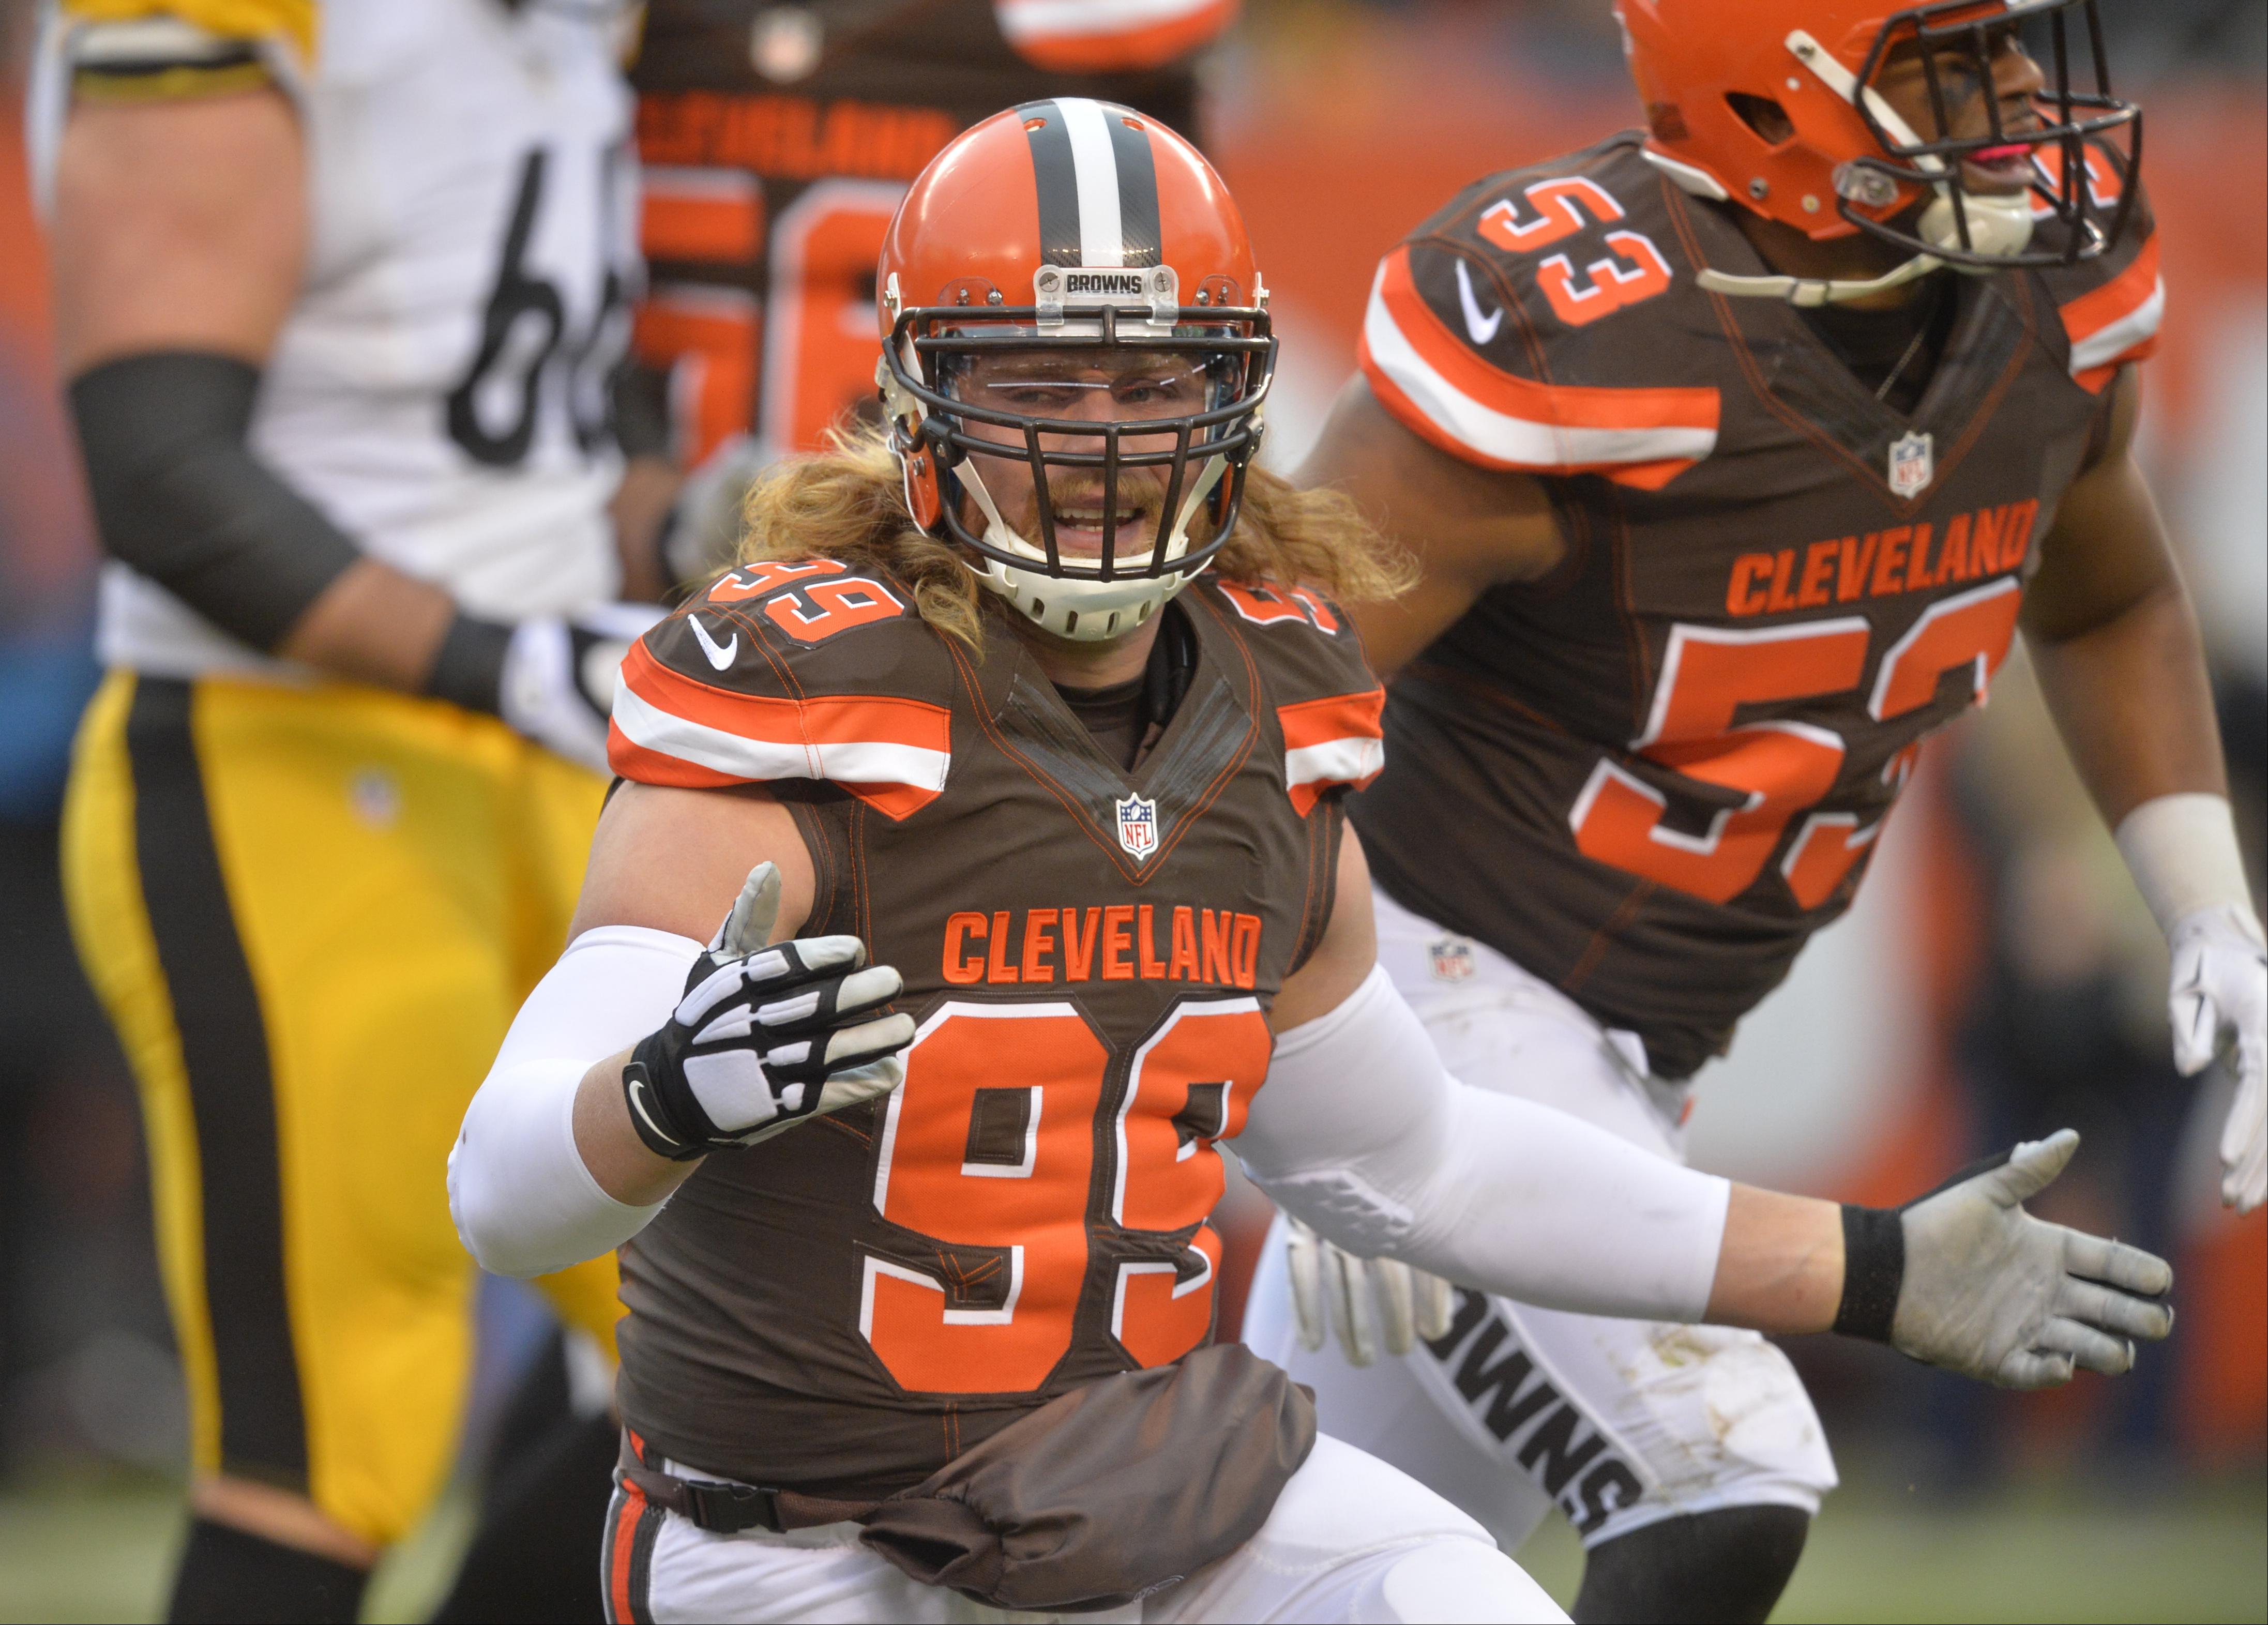 Cleveland Browns outside linebacker Paul Kruger (99) reacts during an NFL game against the Pittsburgh Steelers, Sunday, Jan. 3, 2016, in Cleveland. The Steelers won 28-12. (AP Photo/David Richard)